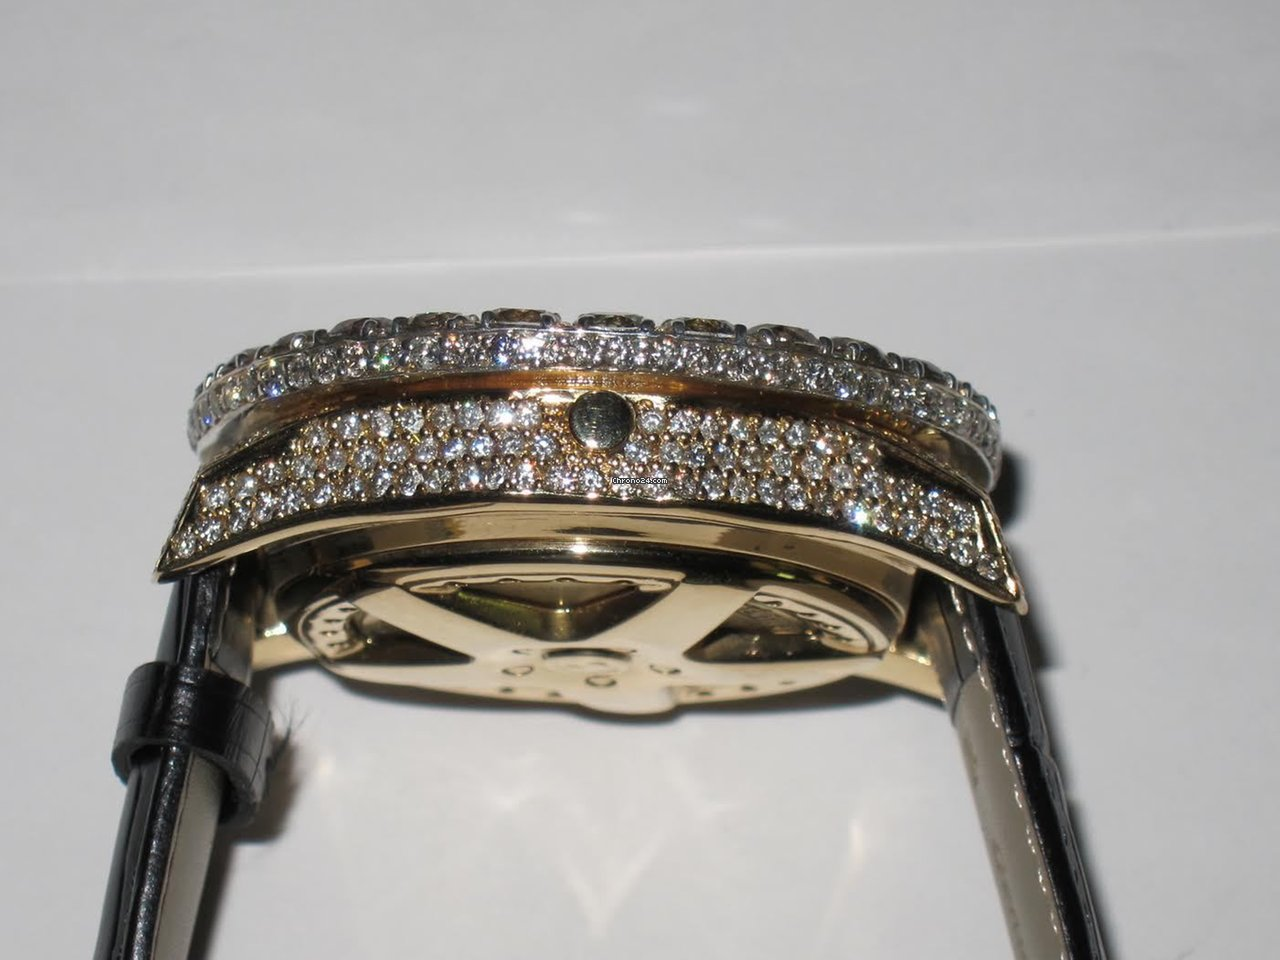 Breitling Bentley 6 75 18k Solid Gold Diamond Automatic For 19 999 For Sale From A Trusted Seller On Chrono24